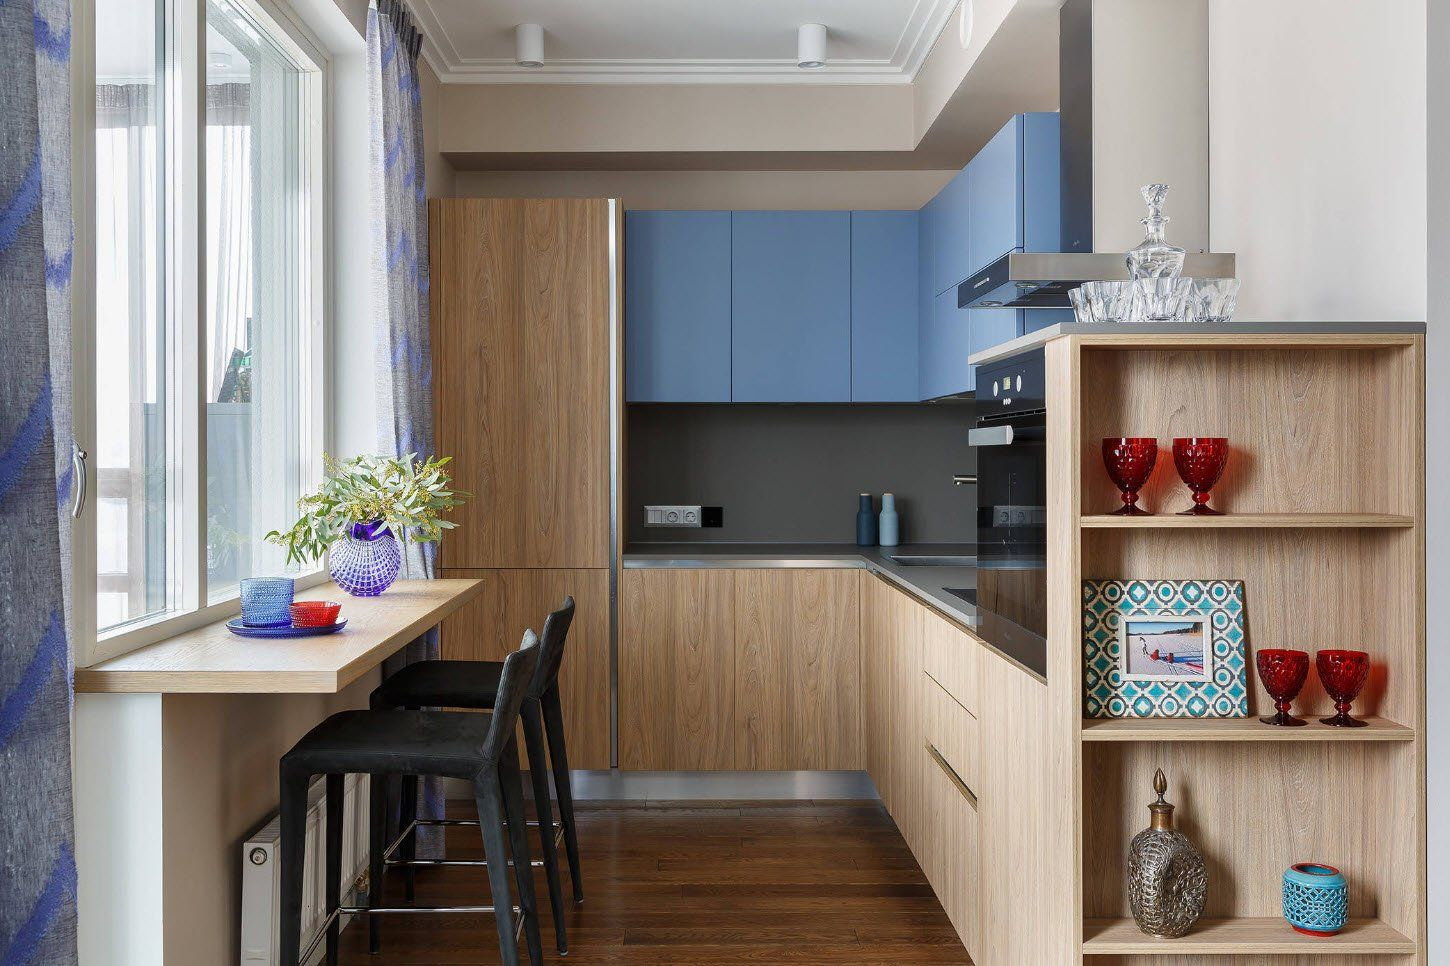 90 Square Feet Kitchen Interior Design Ideas & Examples. Furniture set in different colors